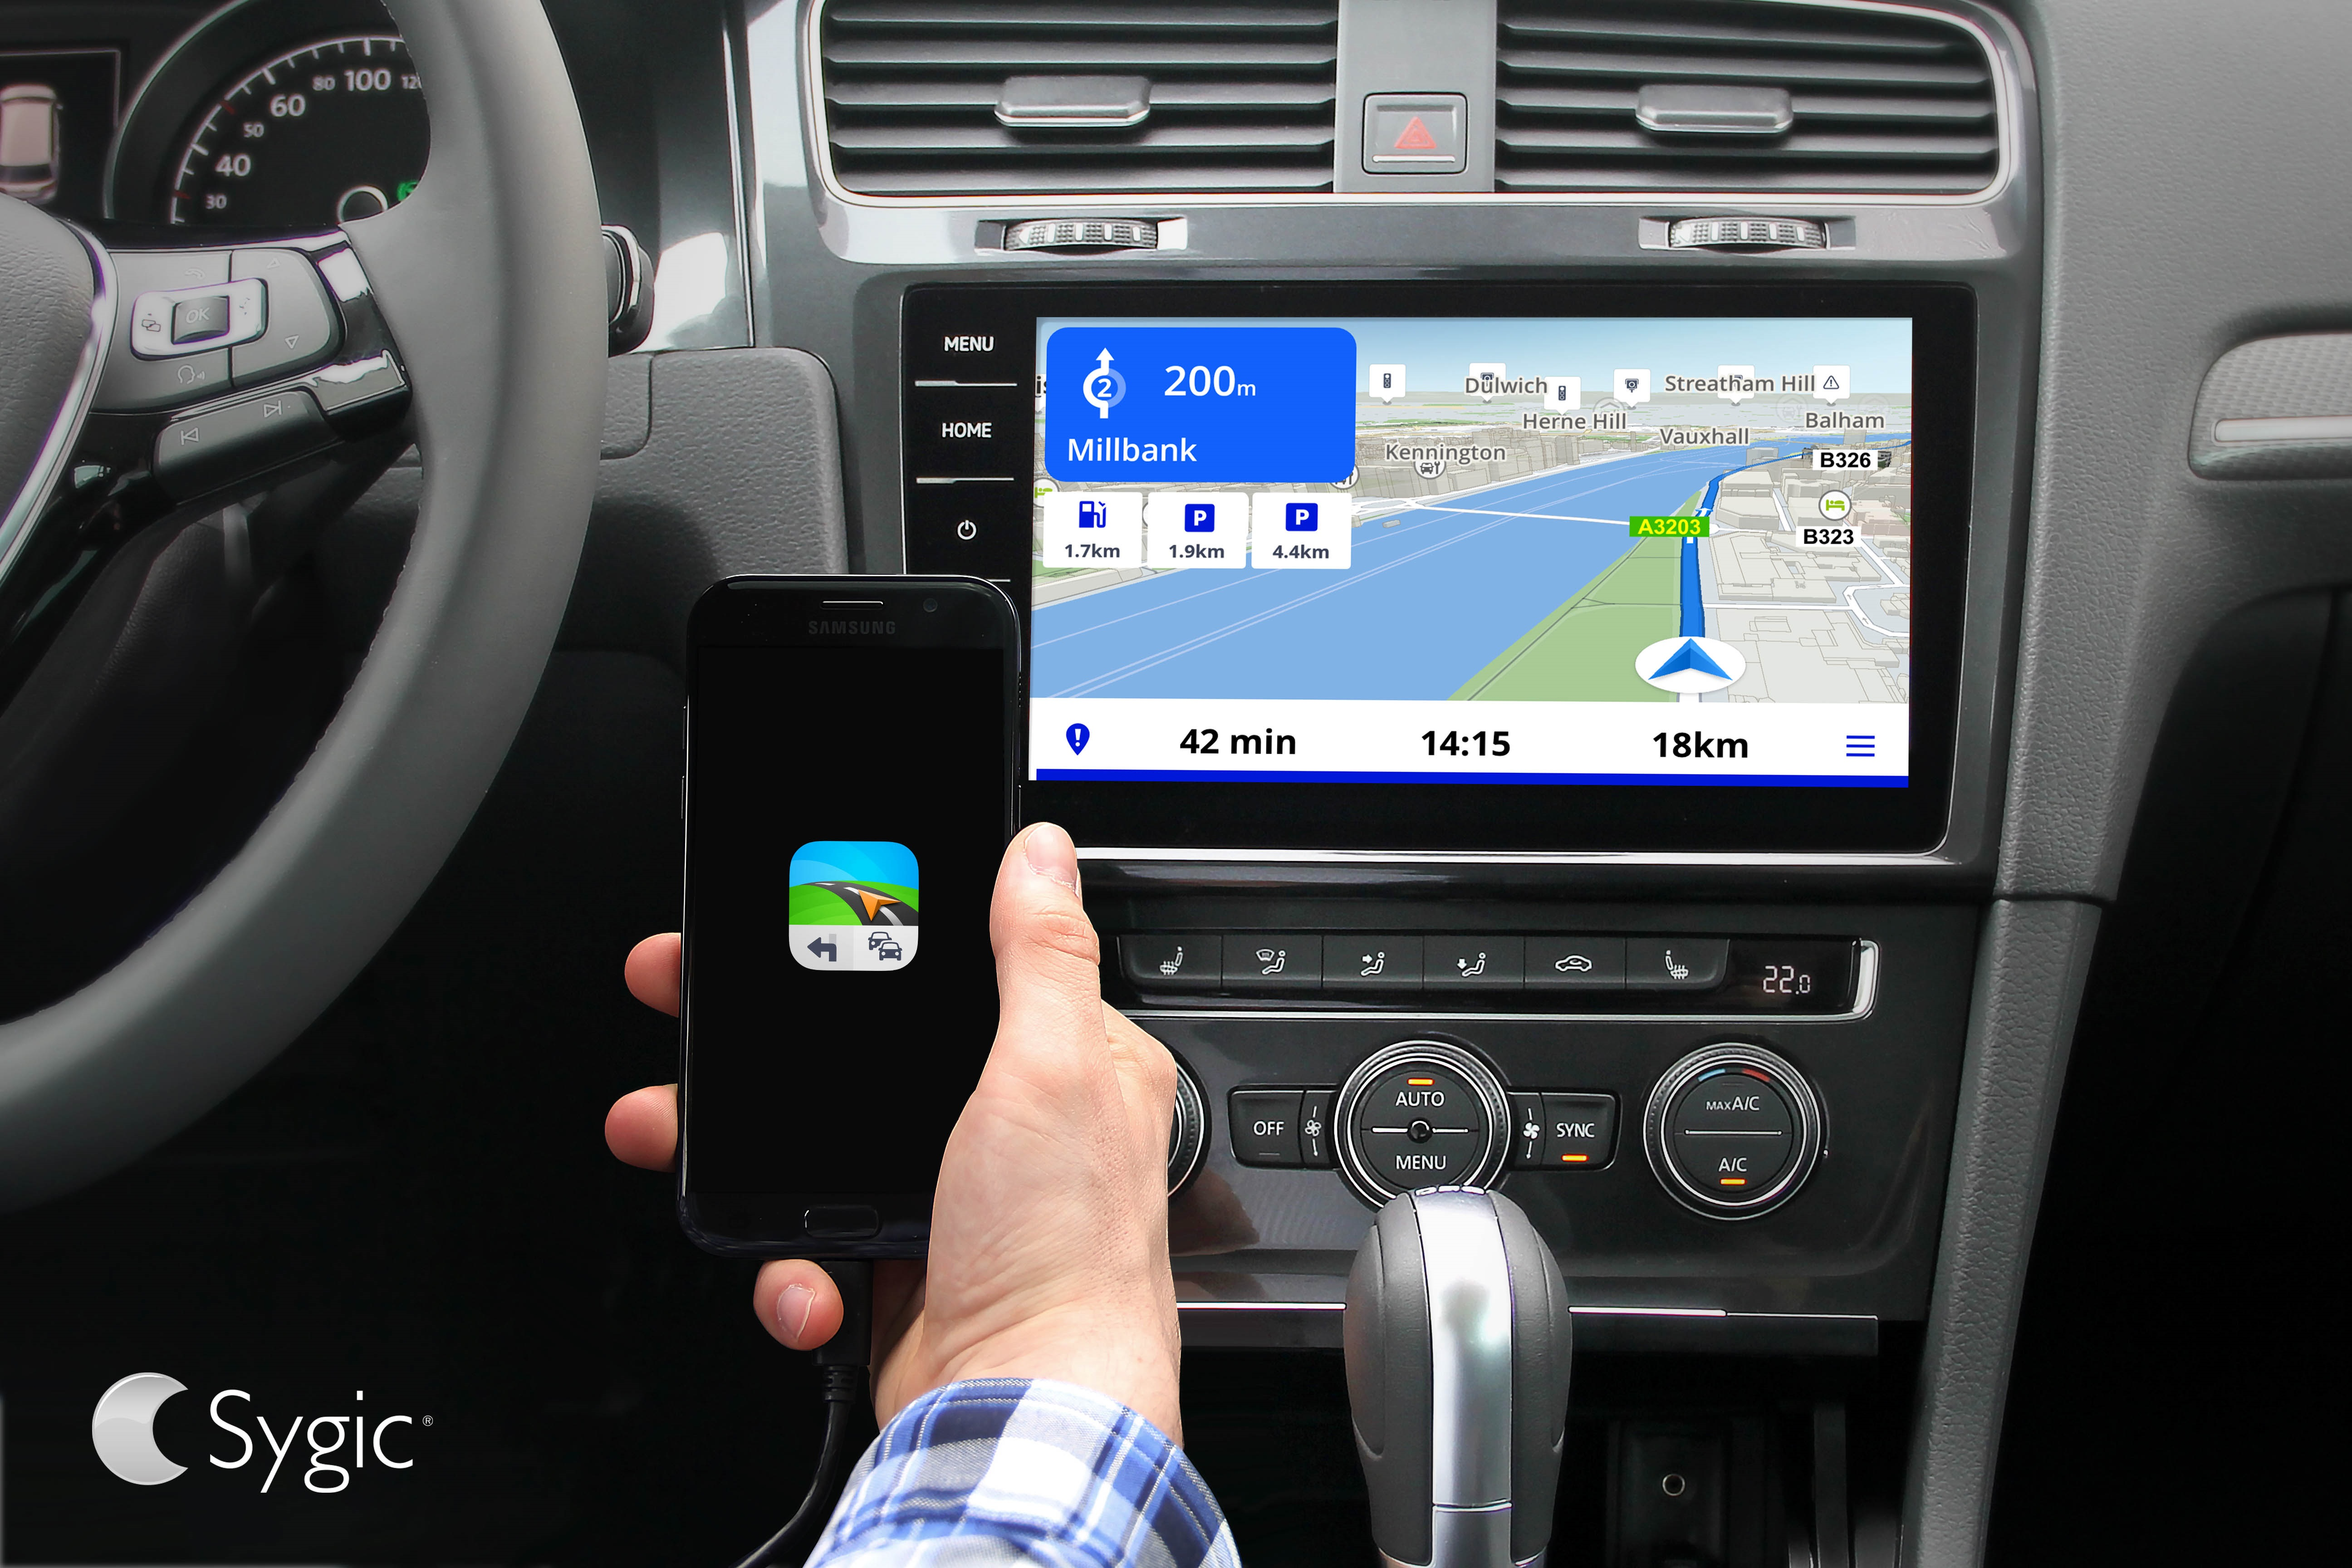 Sygic adds MirrorLink connectivity to Sygic GPS Navigation ...